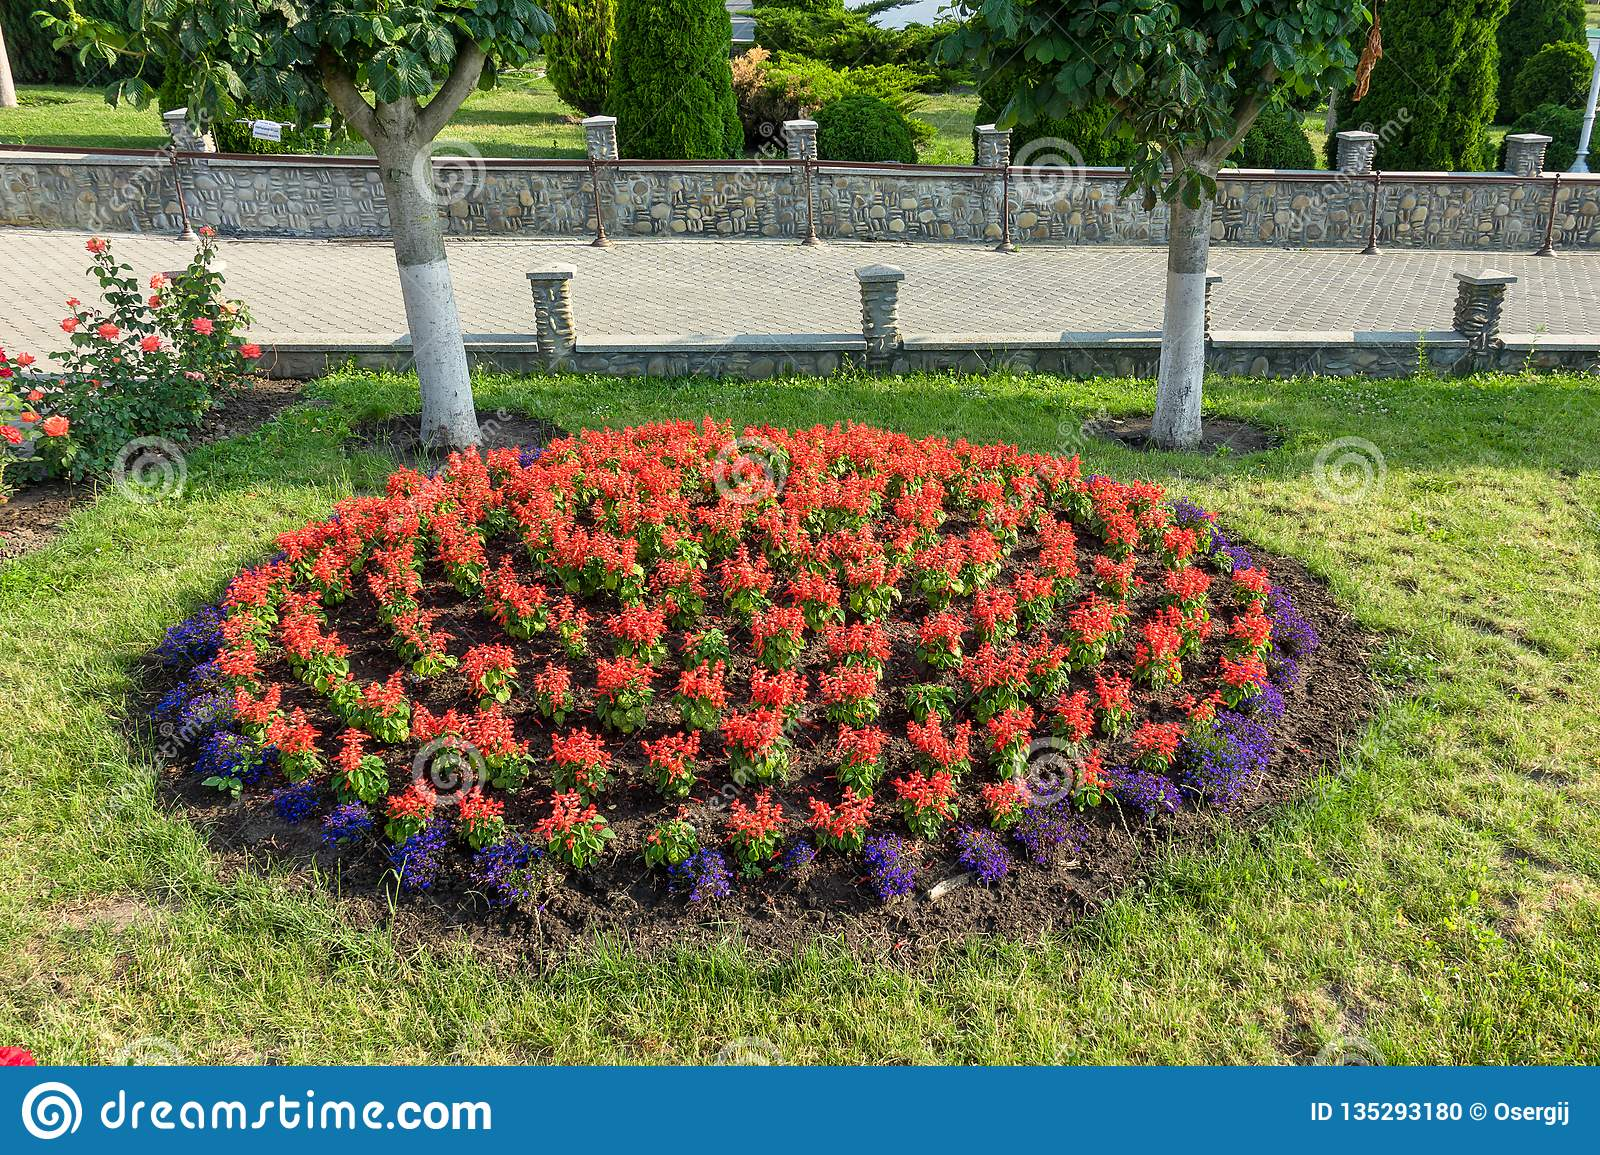 Landscaping Flower Beds. Summer Sunny Day.